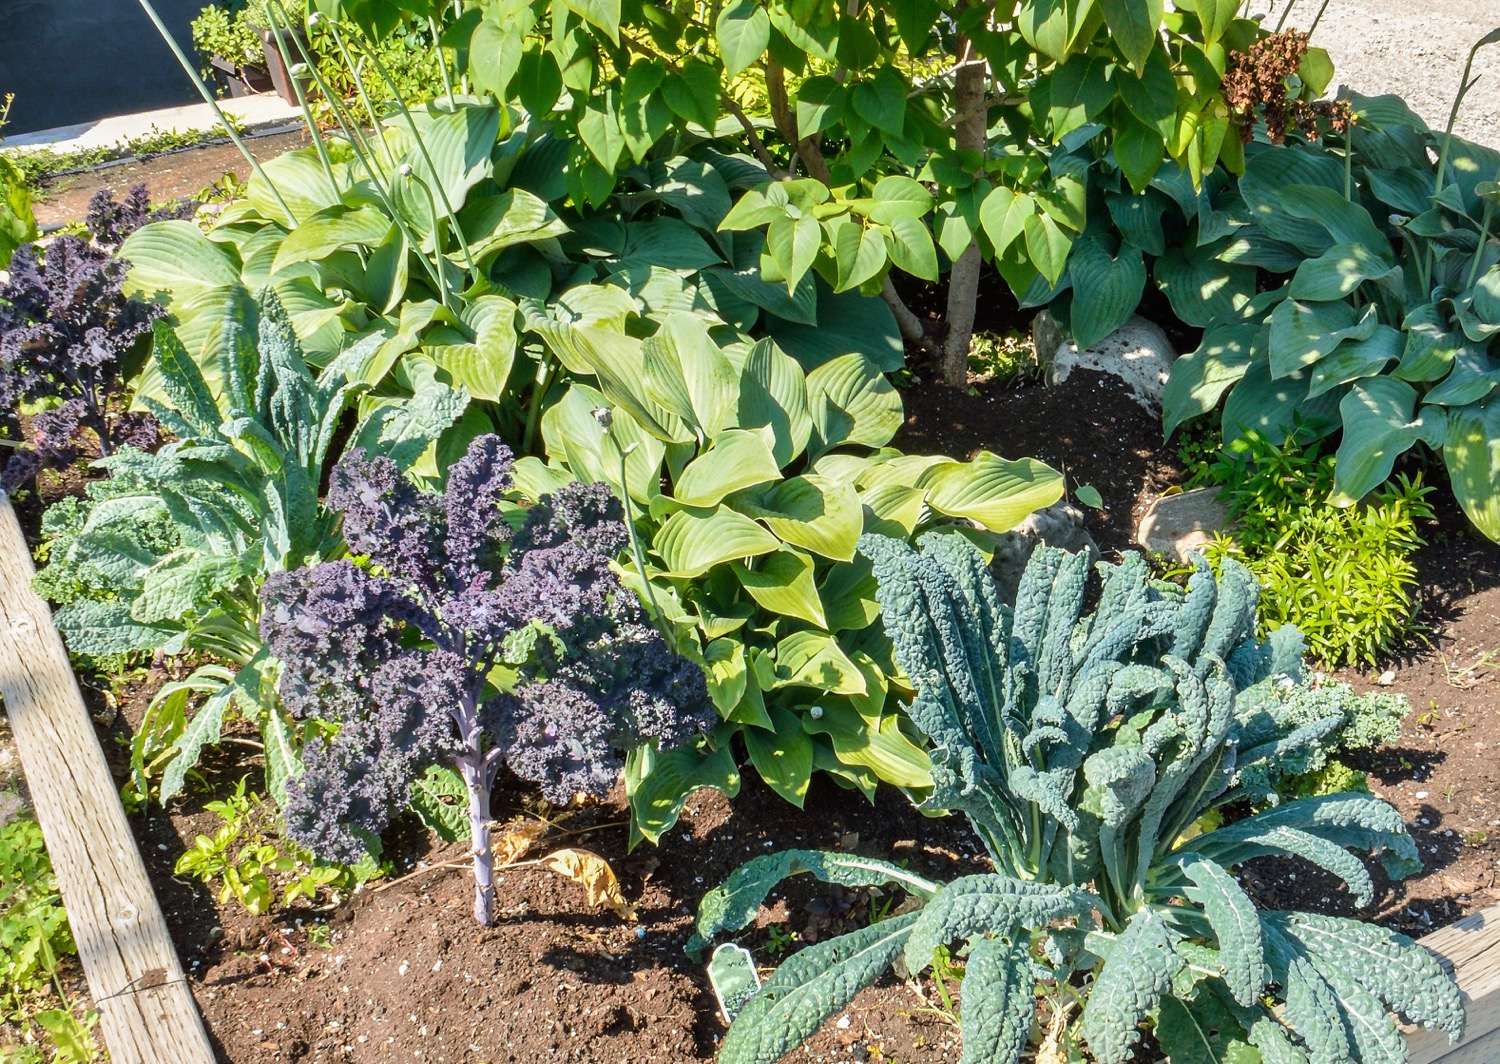 Landscaped vegetable garden with kale growing in a city during summer.jpg